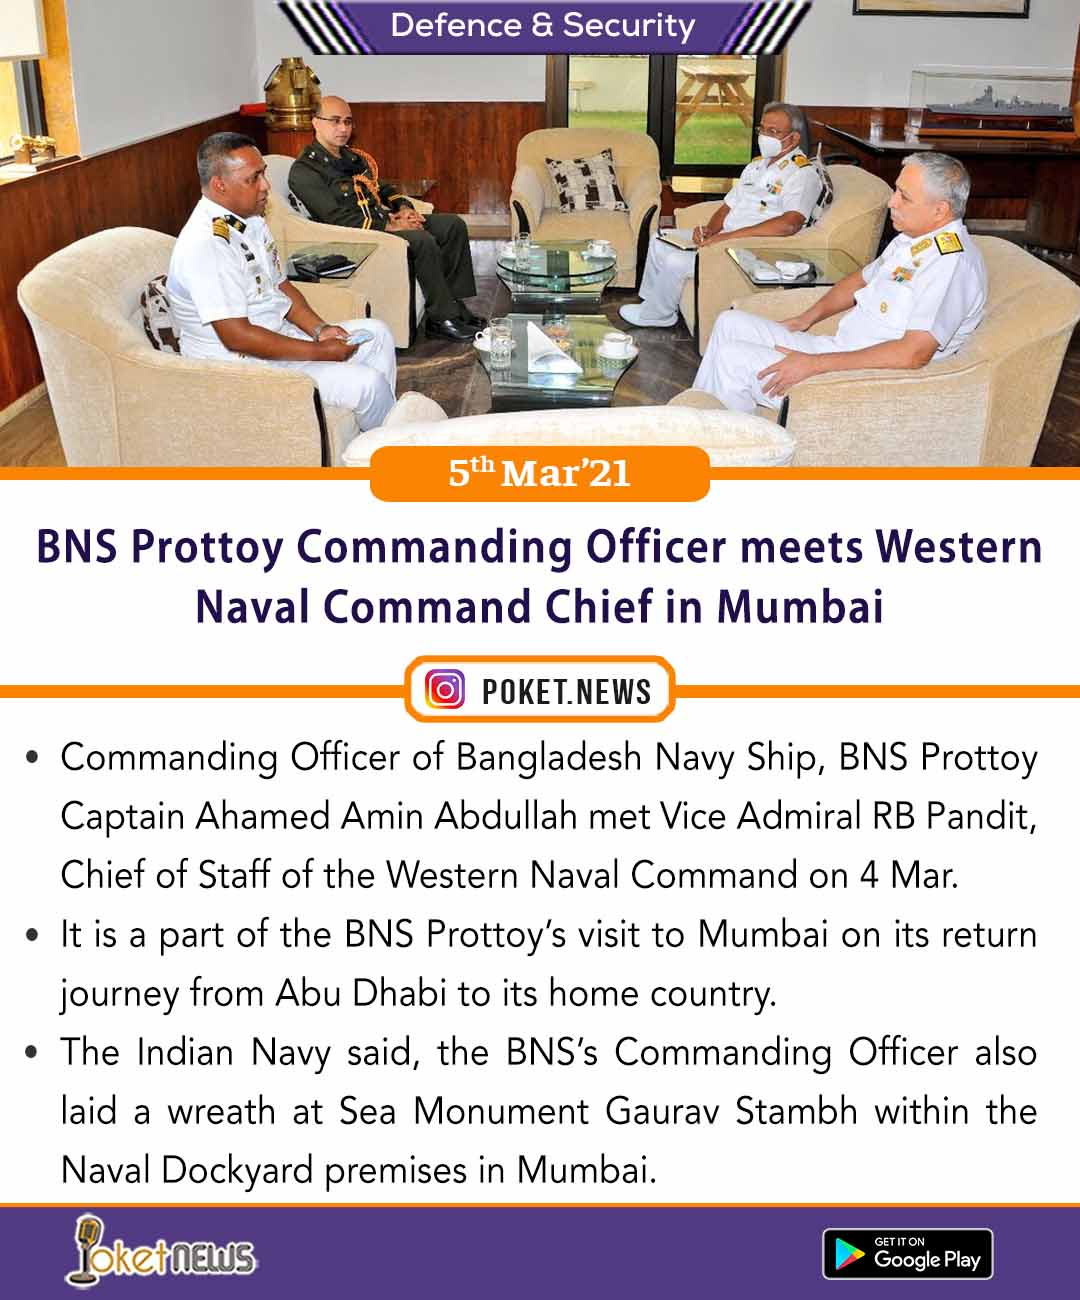 BNS Prottoy Commanding Officer meets Western Naval Command Chief in Mumbai